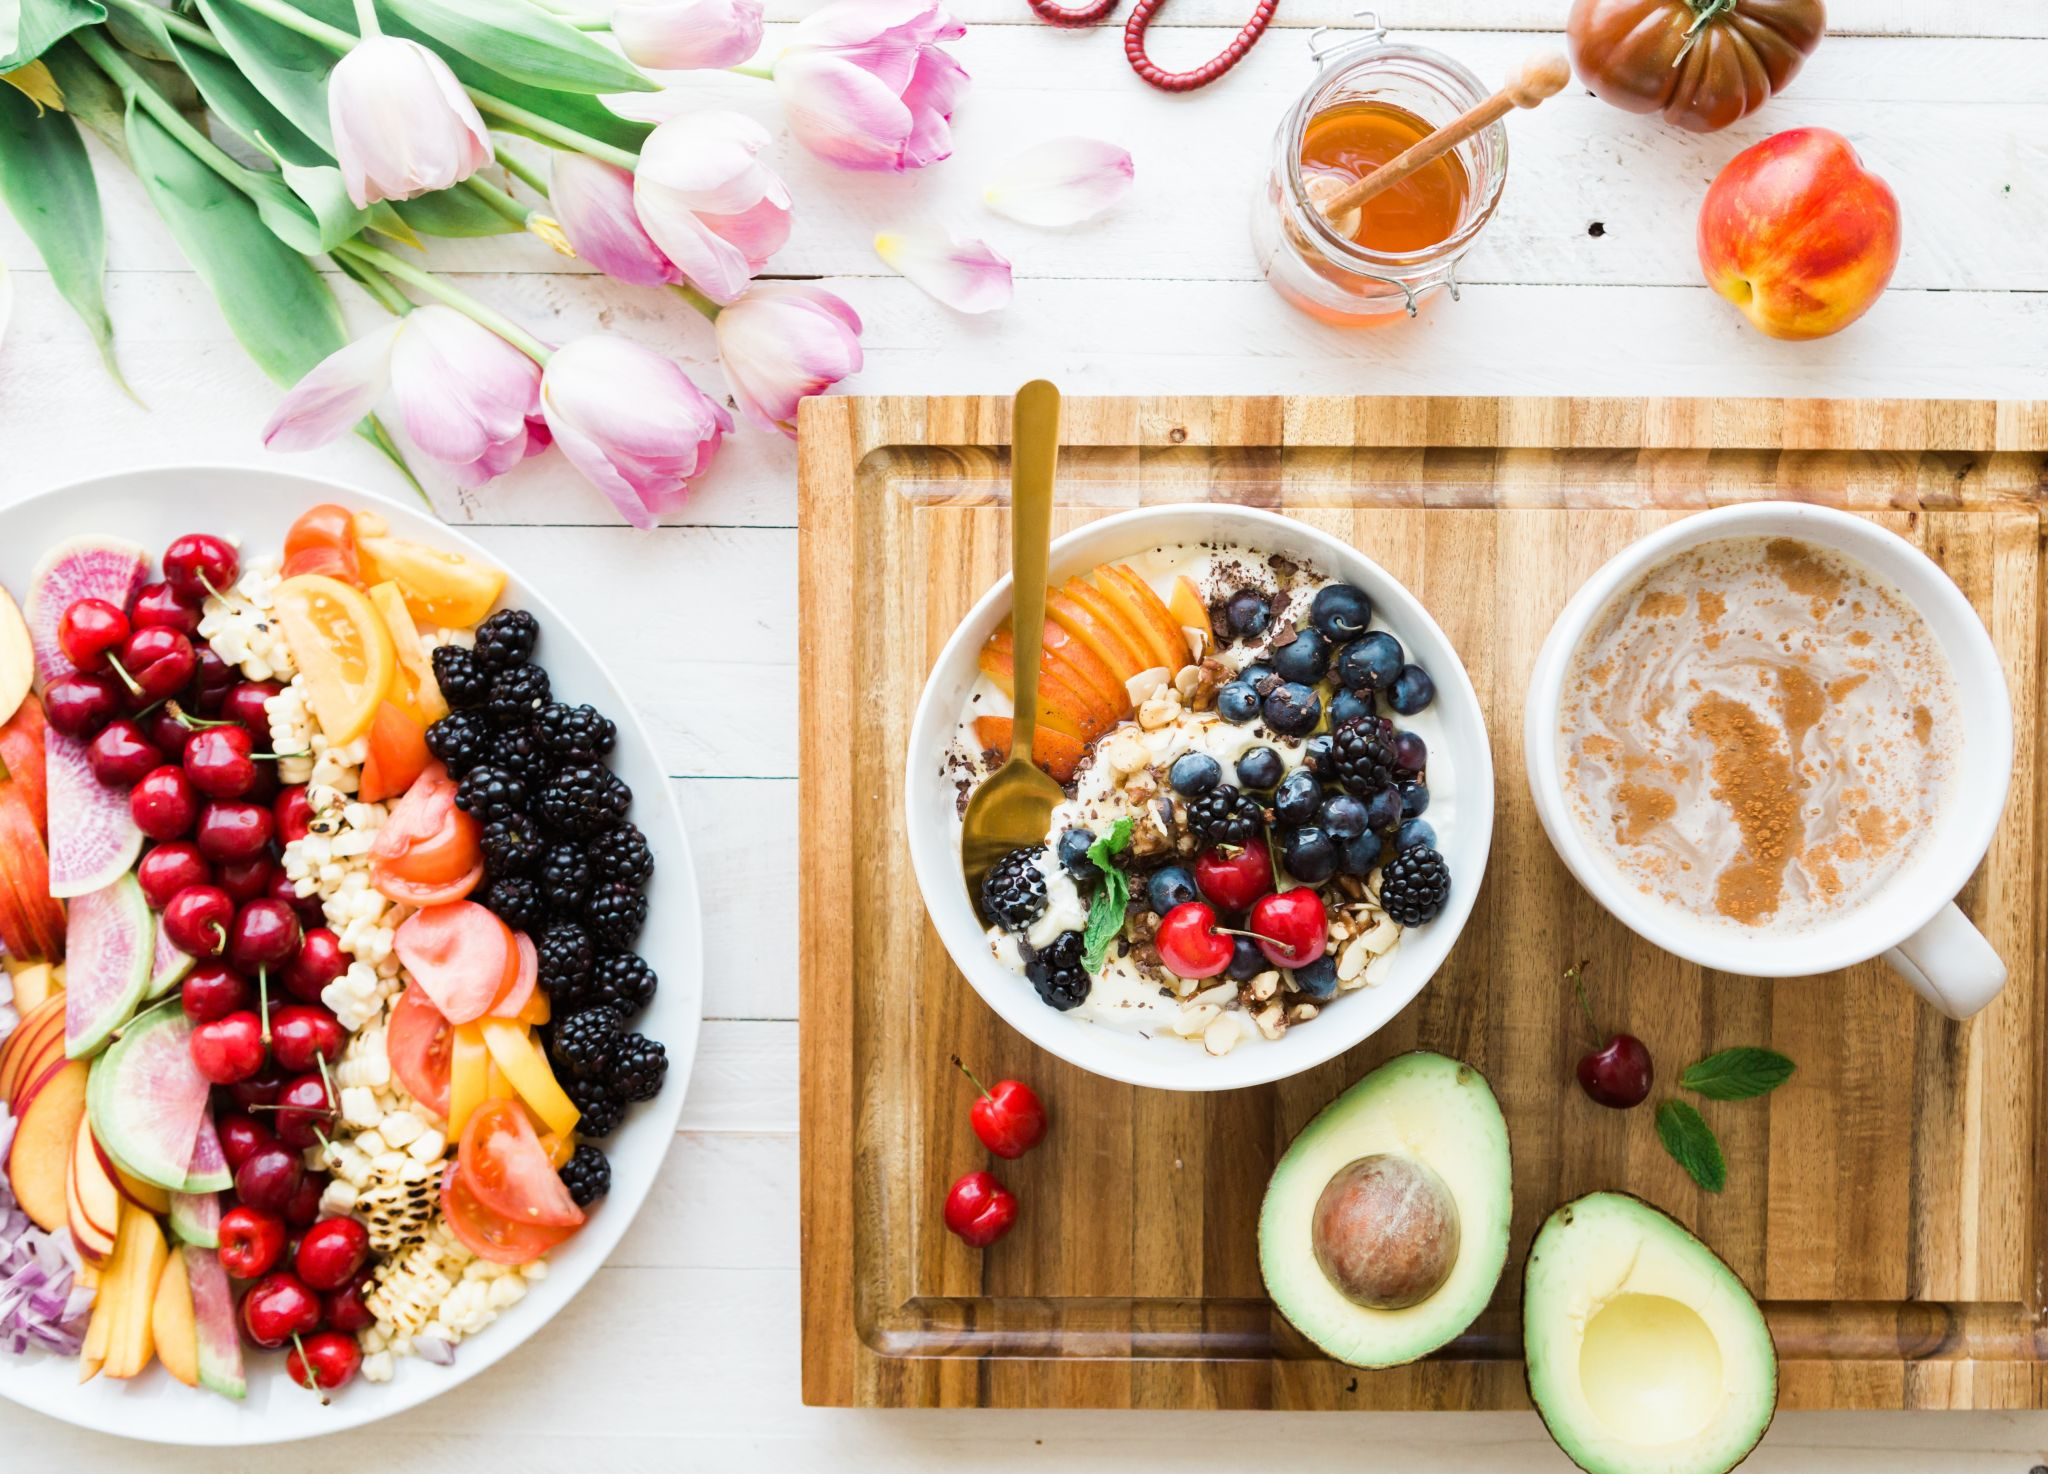 3 healthy breakfast ideas to start your day off right